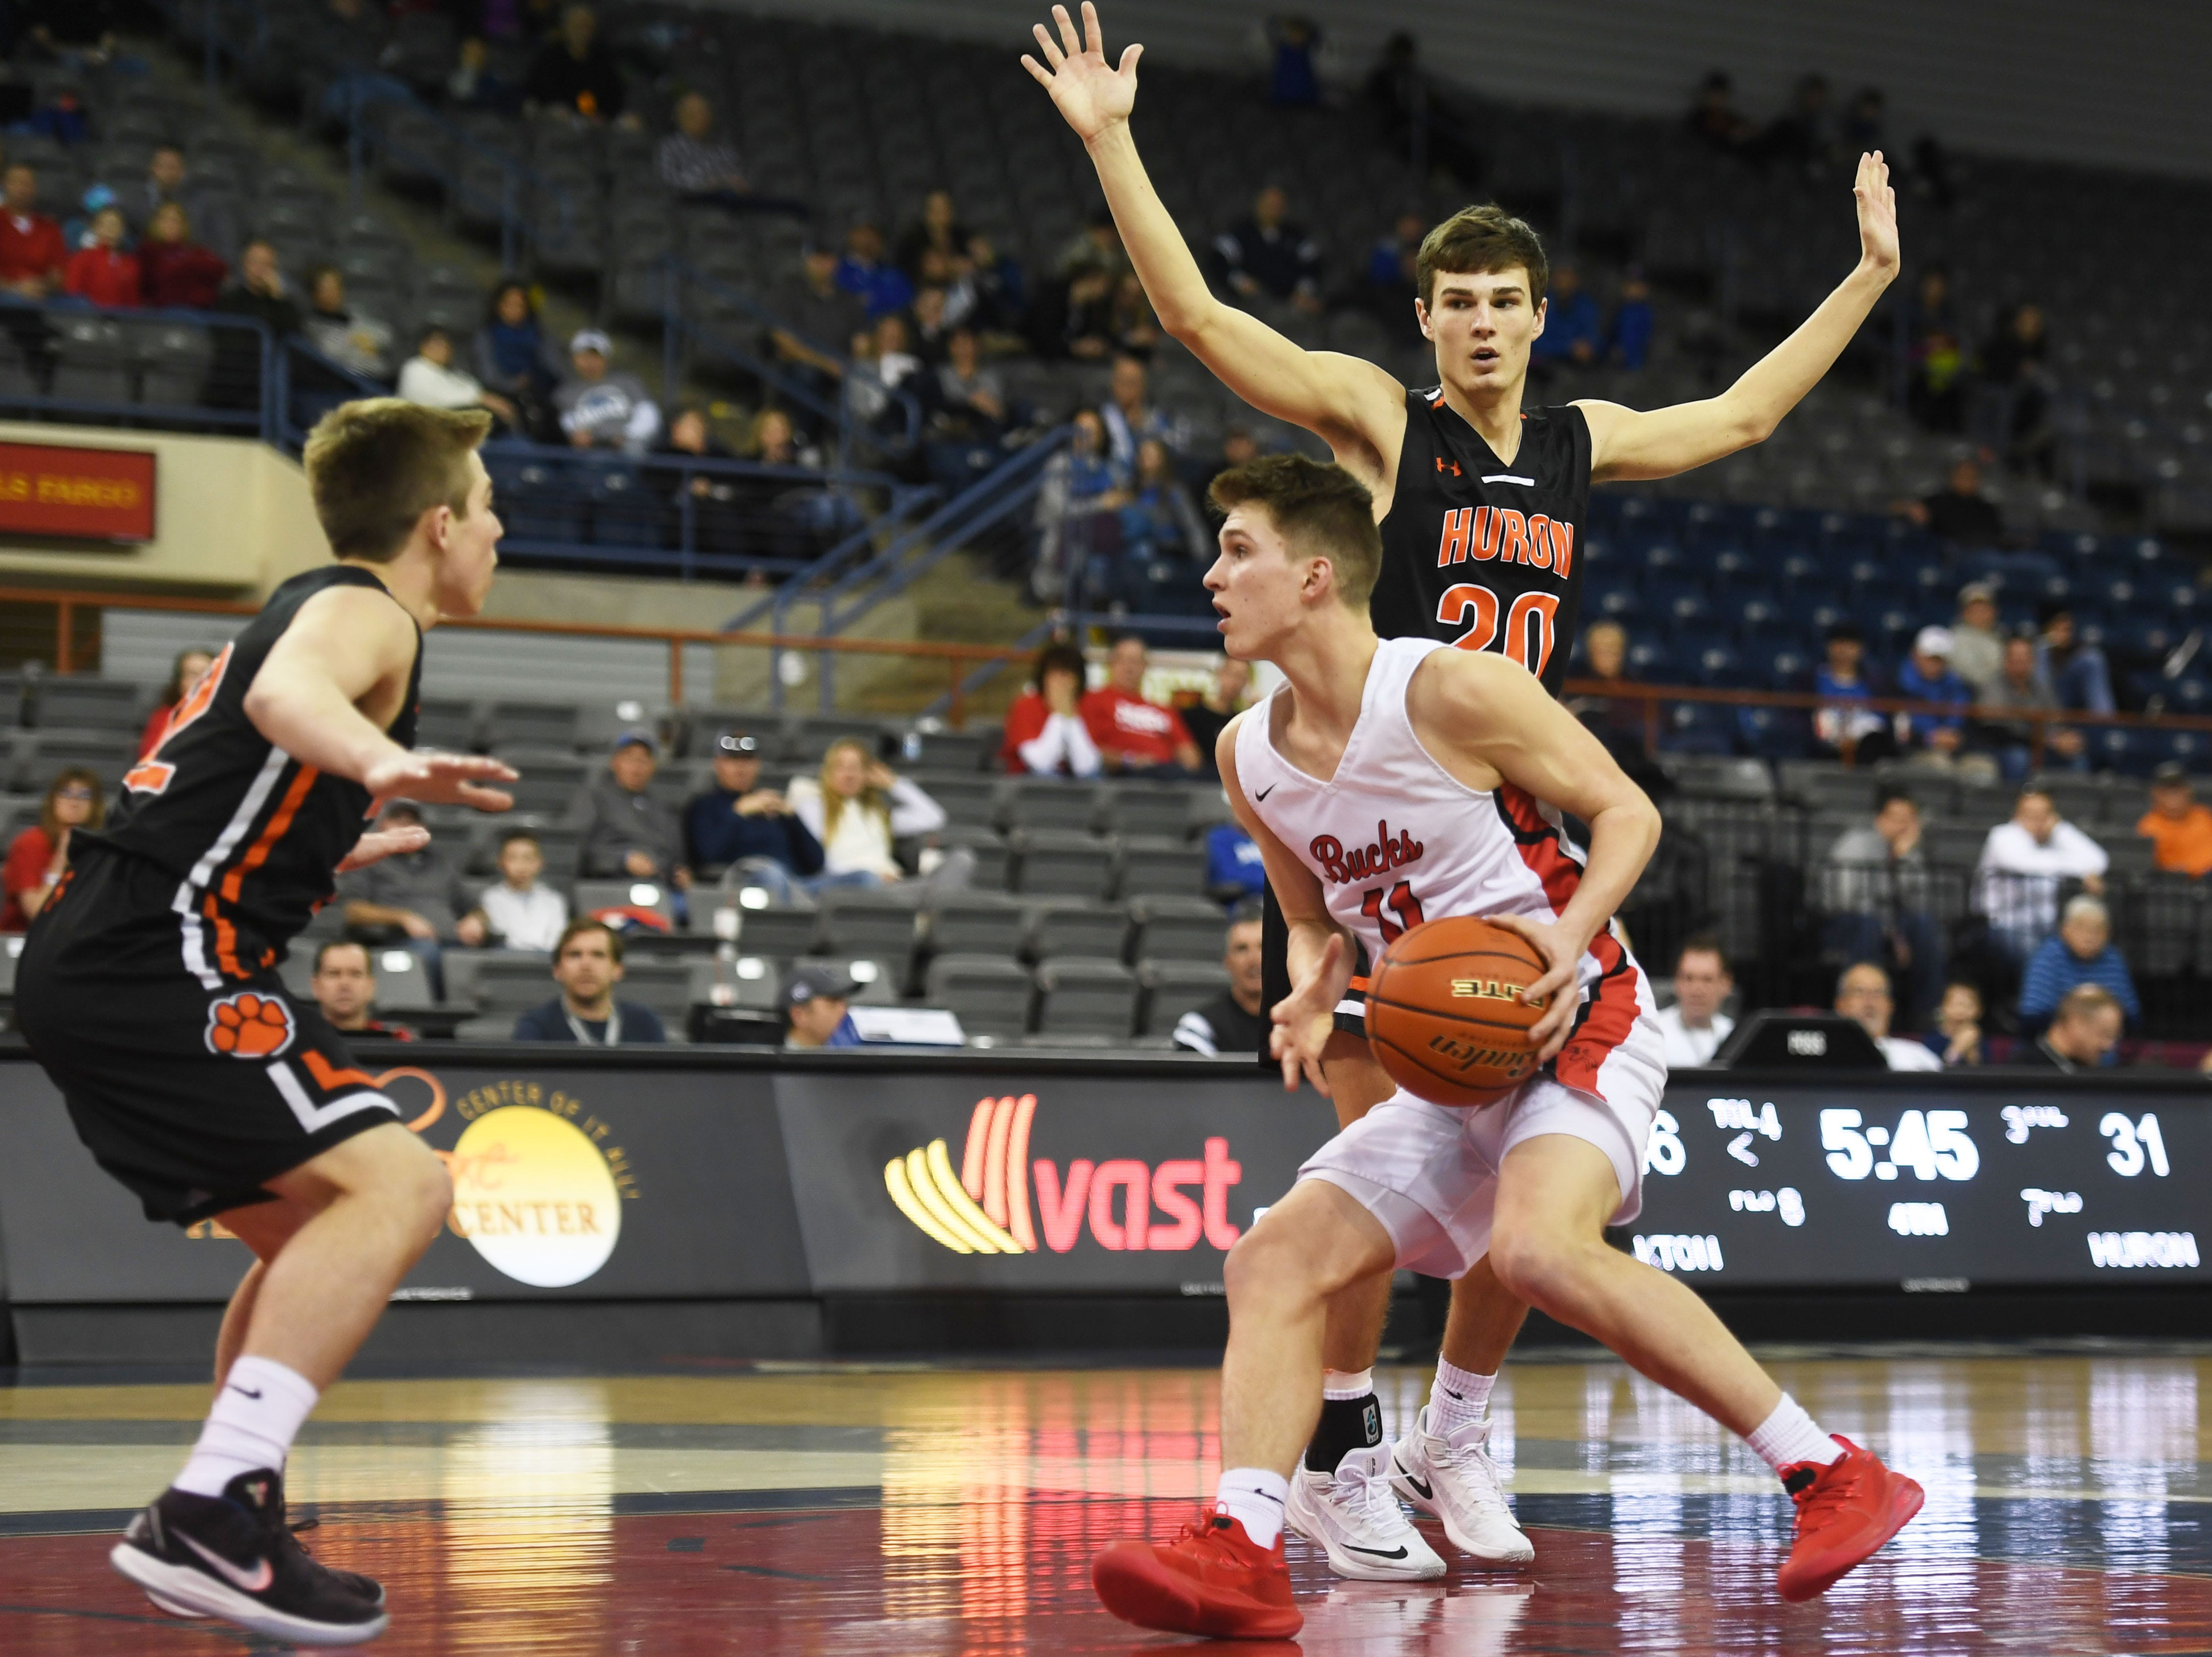 Yankton's Cooper Cornemann goes against Huron defense in the Class AA quarterfinals Thursday, March 14, in Rapid City.